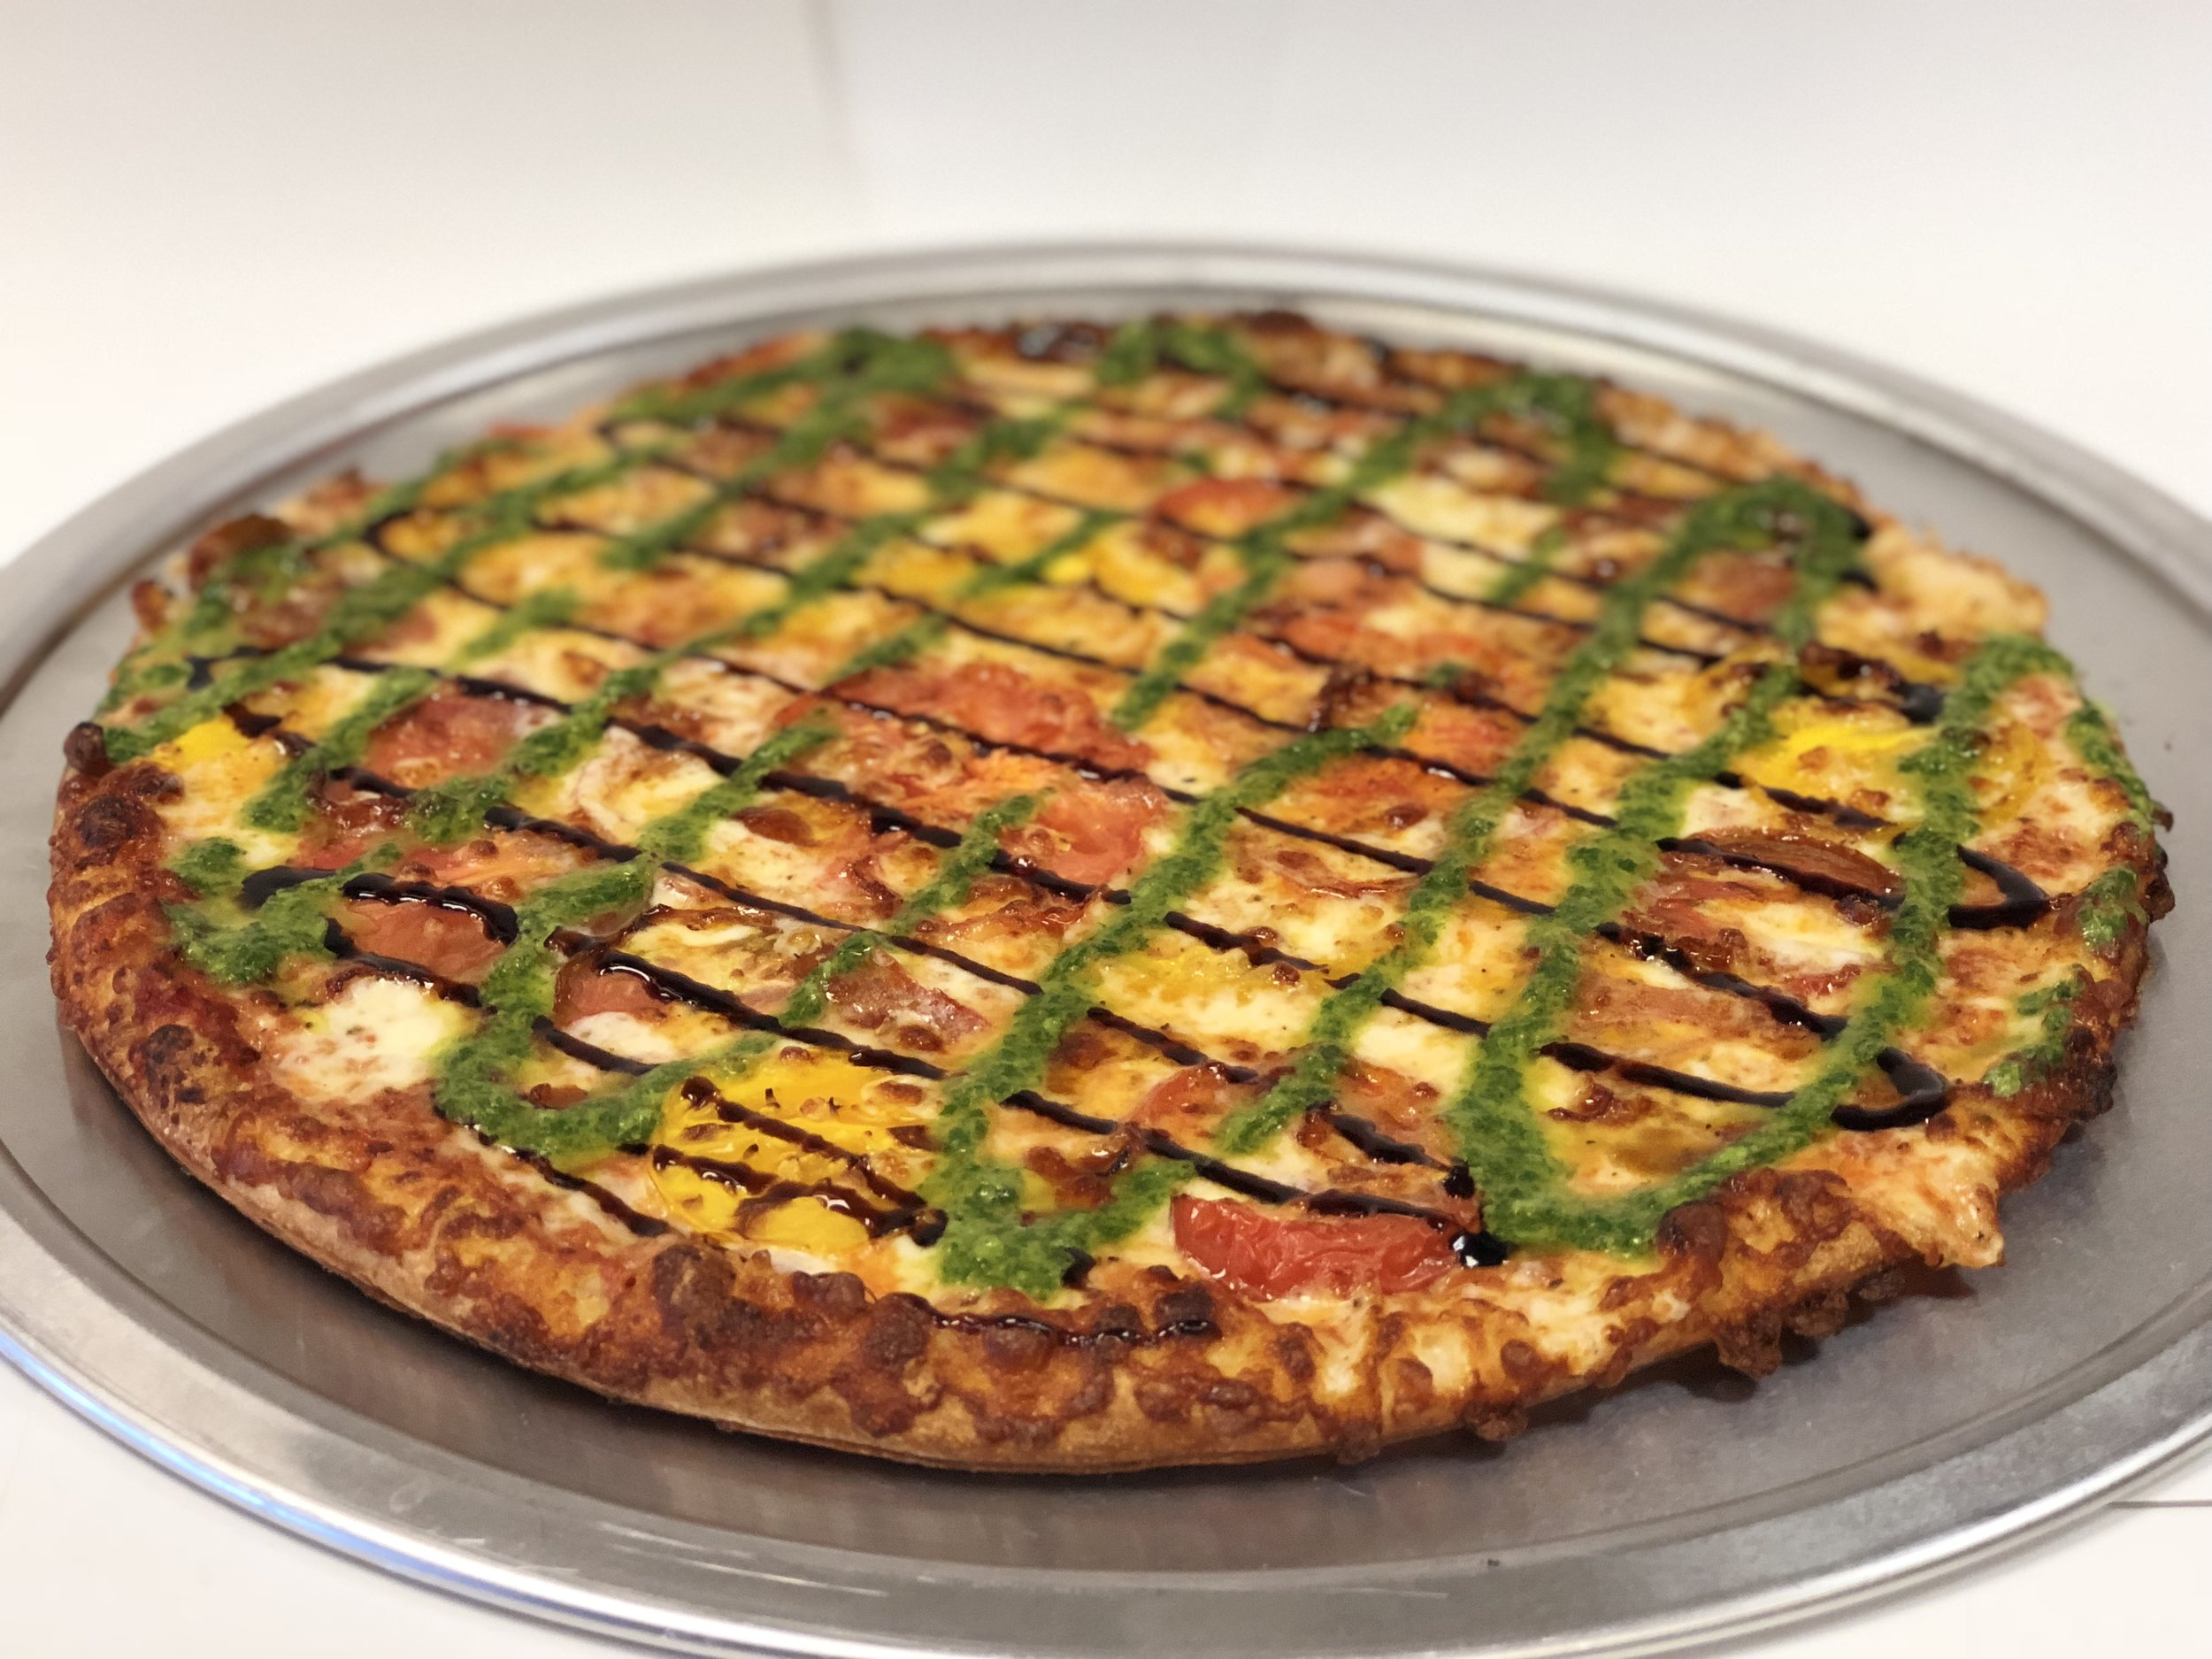 Piper's Margherita Pizza!  This tasty Thin Crust pizza starts with our  house-made marinara sauce, garlic, and  mozzarella cheese. Then it's topped with fresh sliced heirloom tomatoes and a drizzle of  balsamic glaze and basil pesto.  Small  Medium  Large  X-Large $15.99  $19.46  $22.69  $25.25